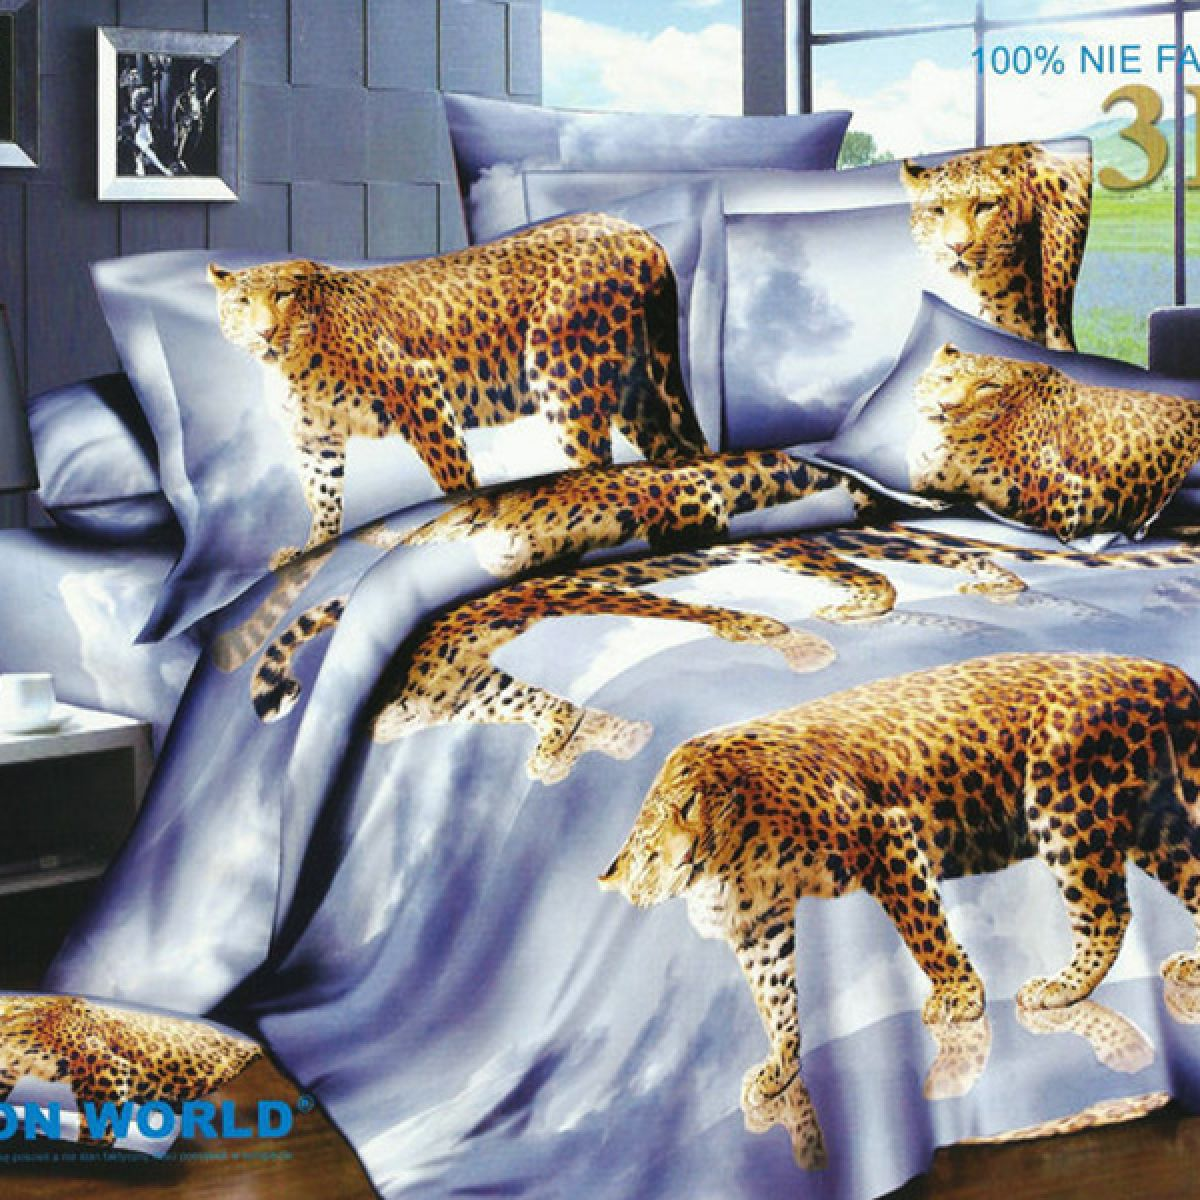 3D Beddings - Cotton World - FSP-171 - 220x200 cm - 3 pcs